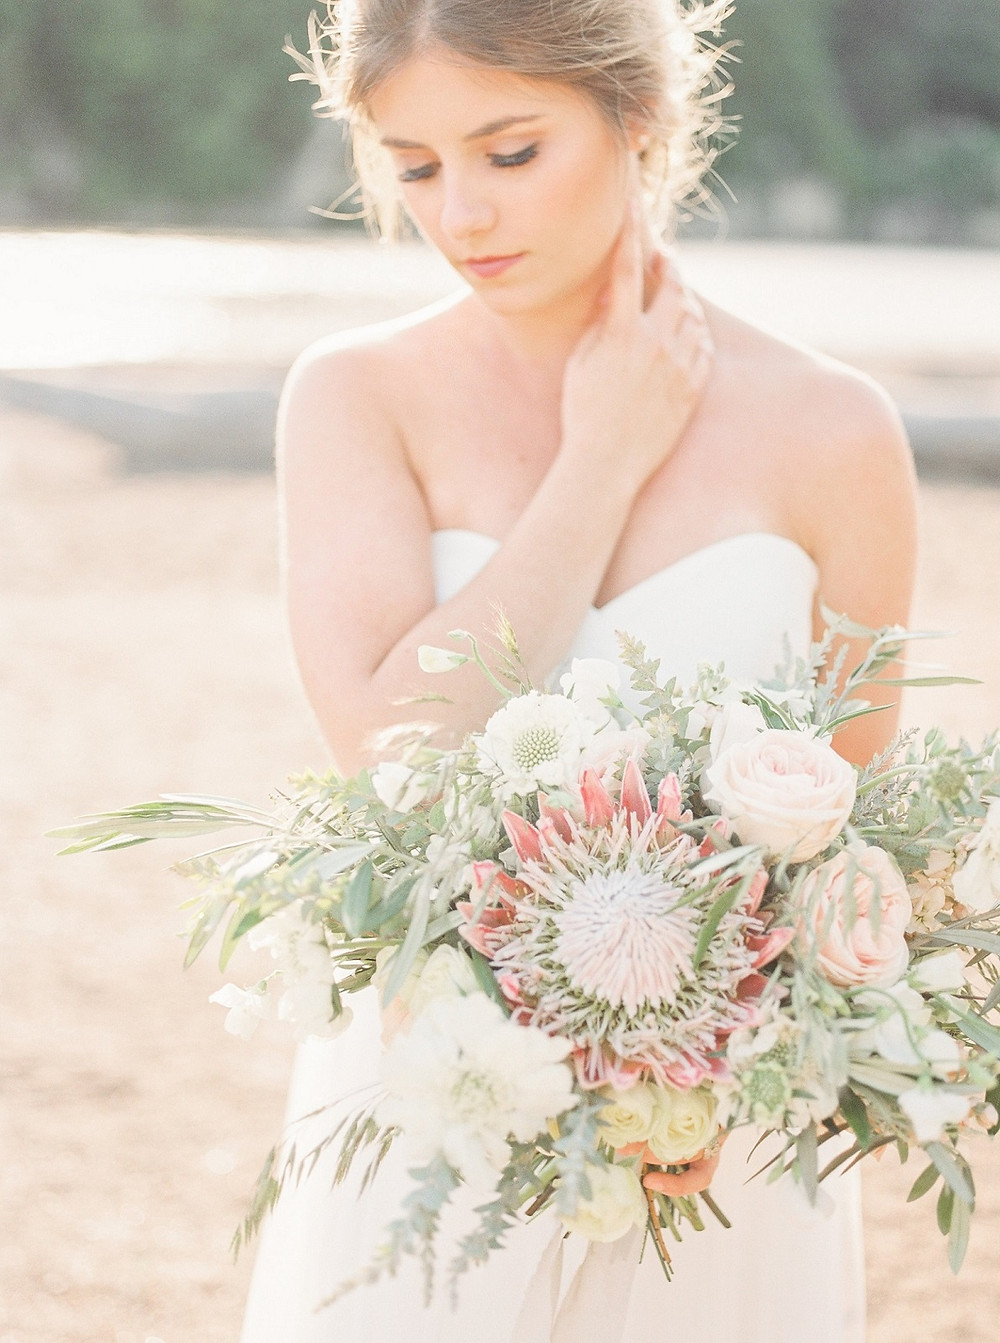 Studio bloom iowa wedding floral designer created a bridal bouquet of protea, roses, scabiosa, and olive for a beach wedding